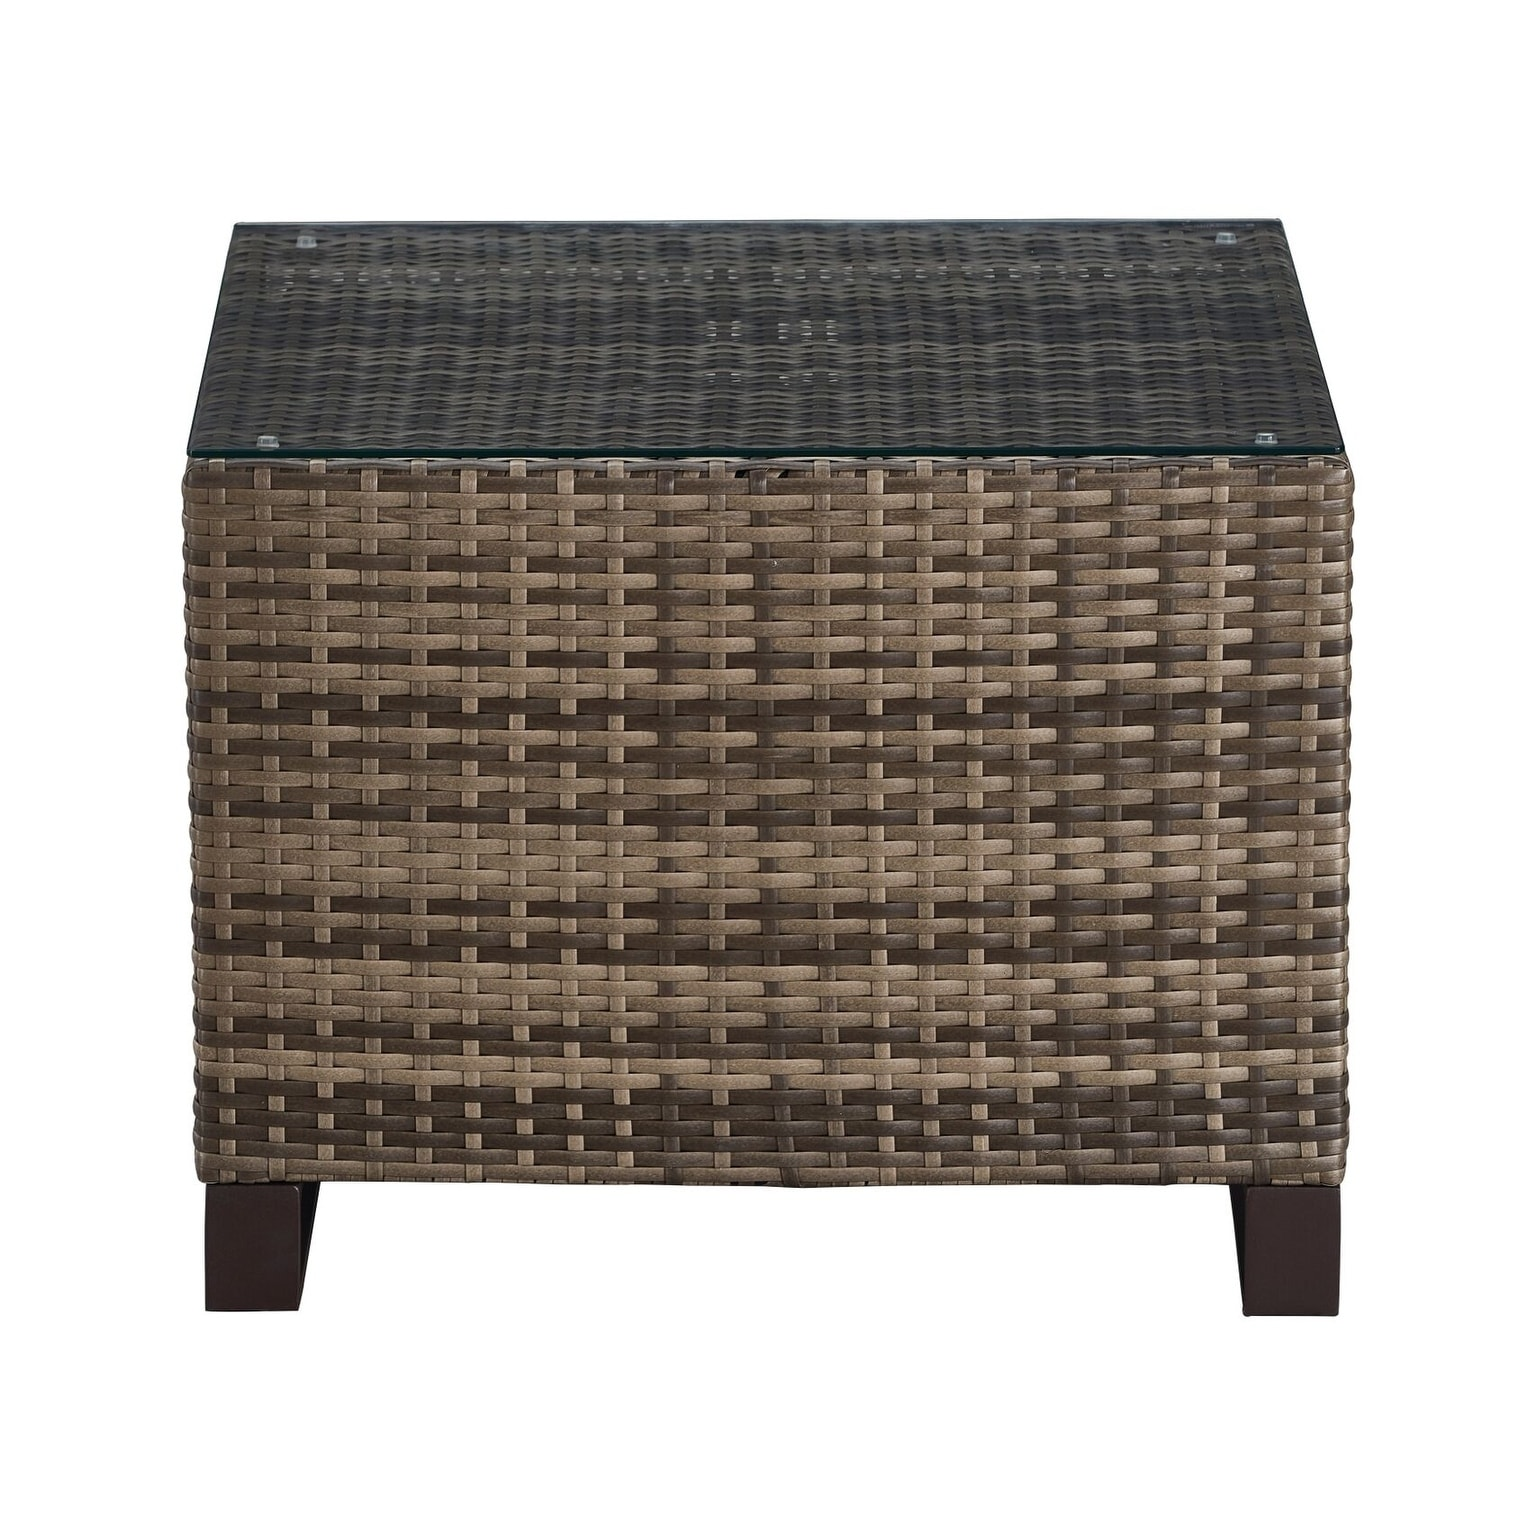 tommy hilfiger oceanside outdoor side table with storage gray coastal wicker free shipping today black and white bedside lamps marble top end tables antique acrylic nightstand